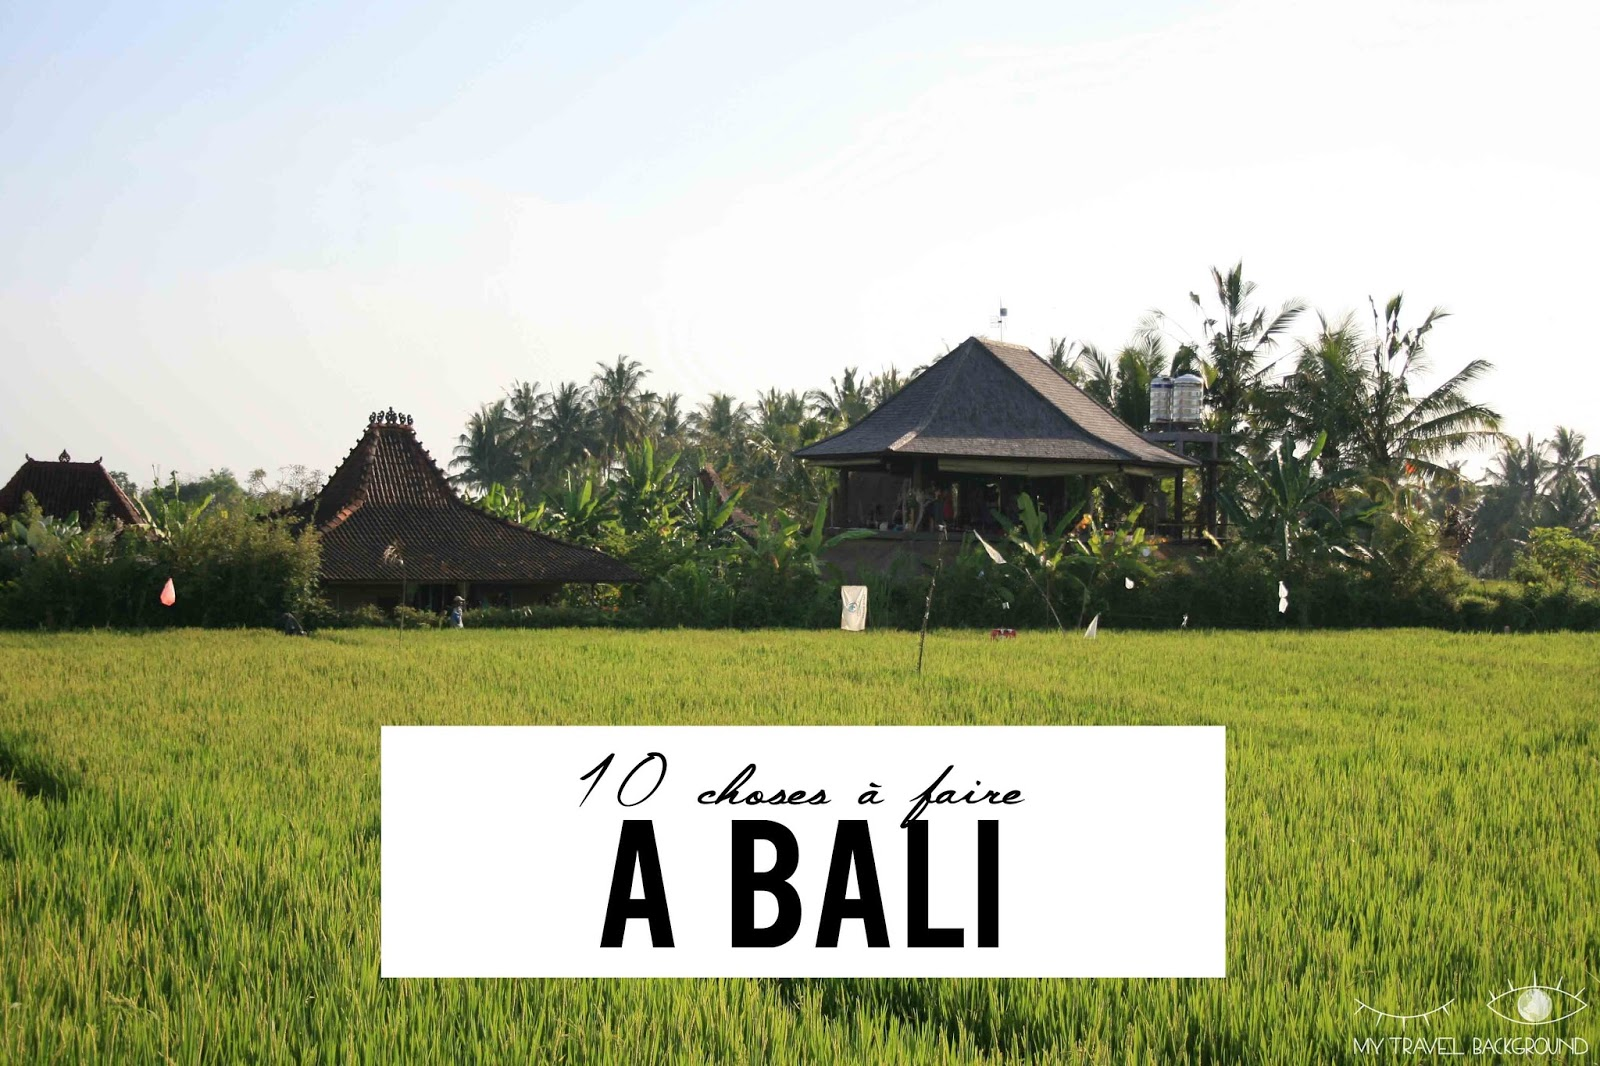 My Travel Background : 10 choses à faire à Bali